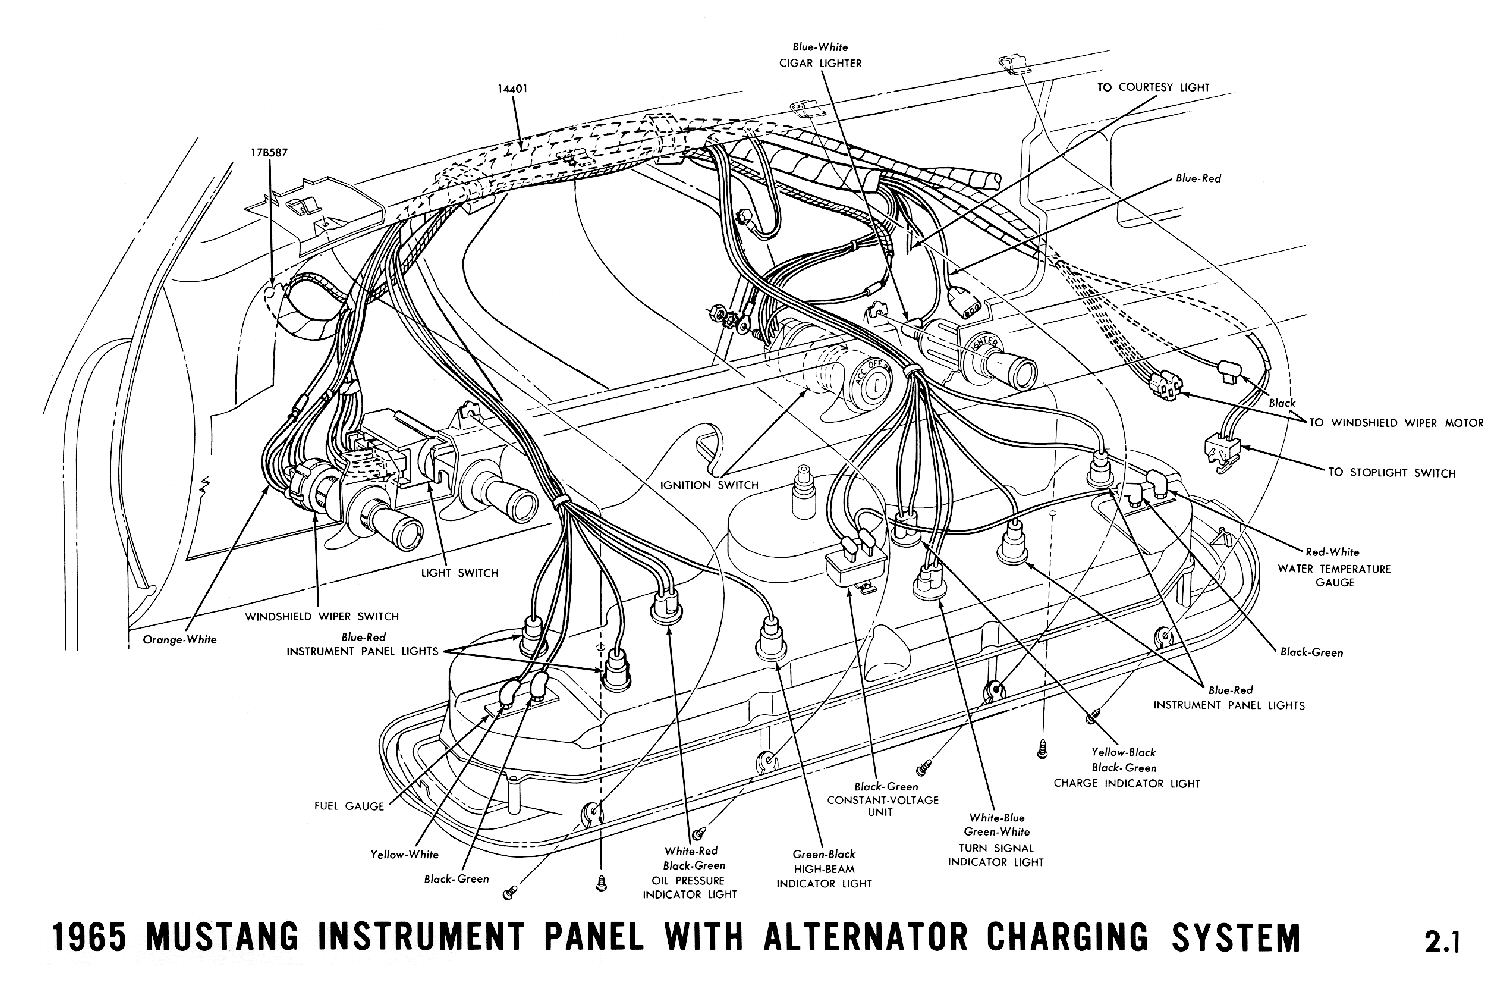 1965a 1965 mustang wiring diagrams average joe restoration 2001 mustang wiring harness at readyjetset.co